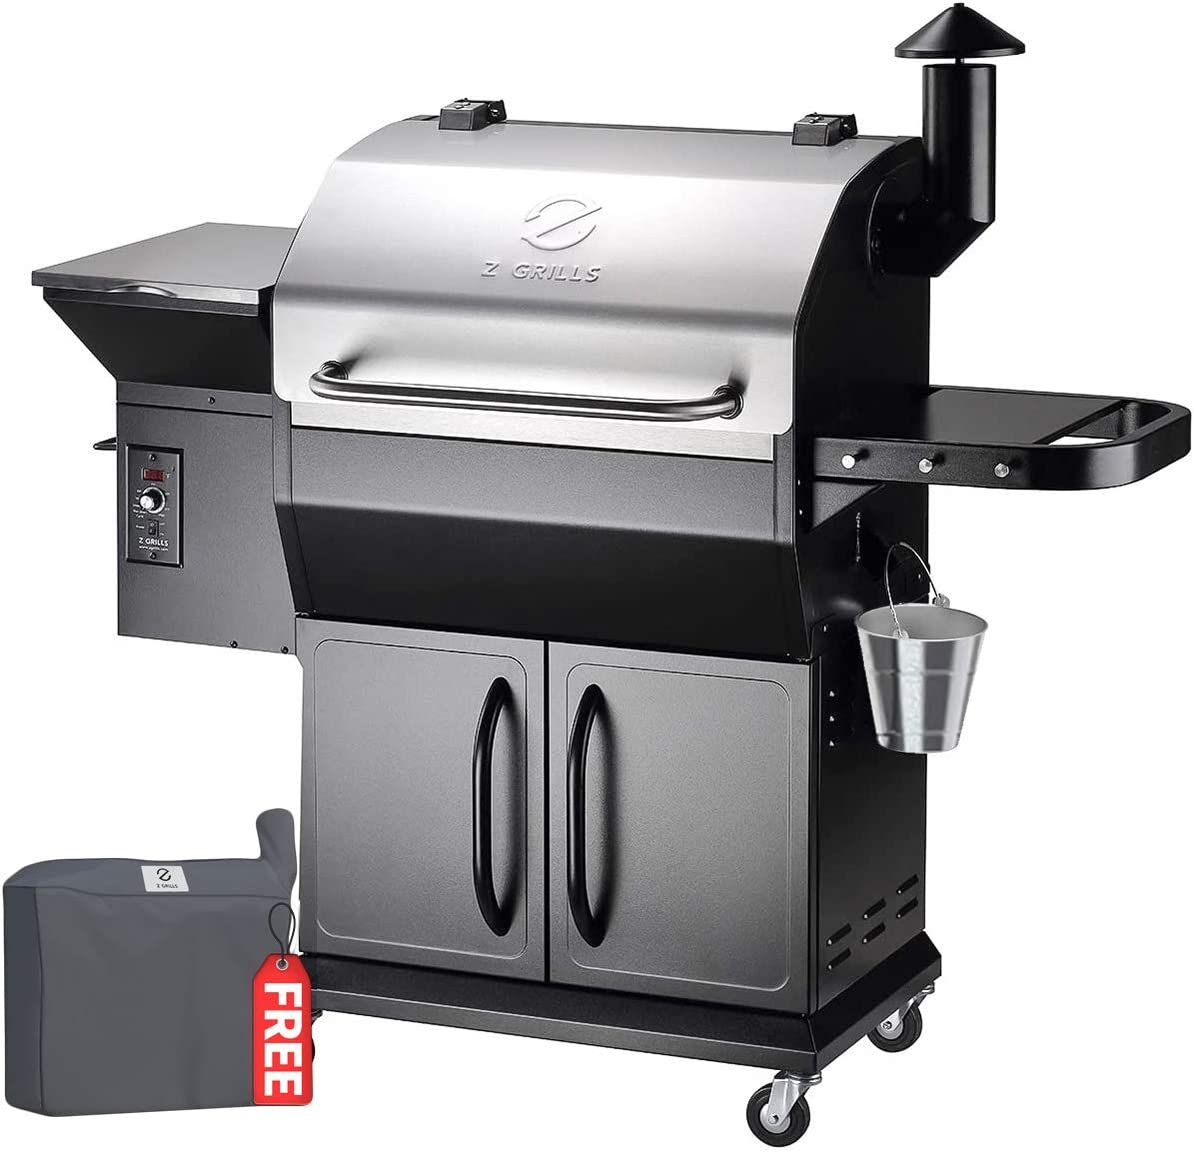 Z GRILLS ZPG-1000E 2020 New Model Wood Pellet Grill Smoker, 8 in 1 BBQ Grill Auto Temperature Control, 1060 Sq in Stainless with Cabinet